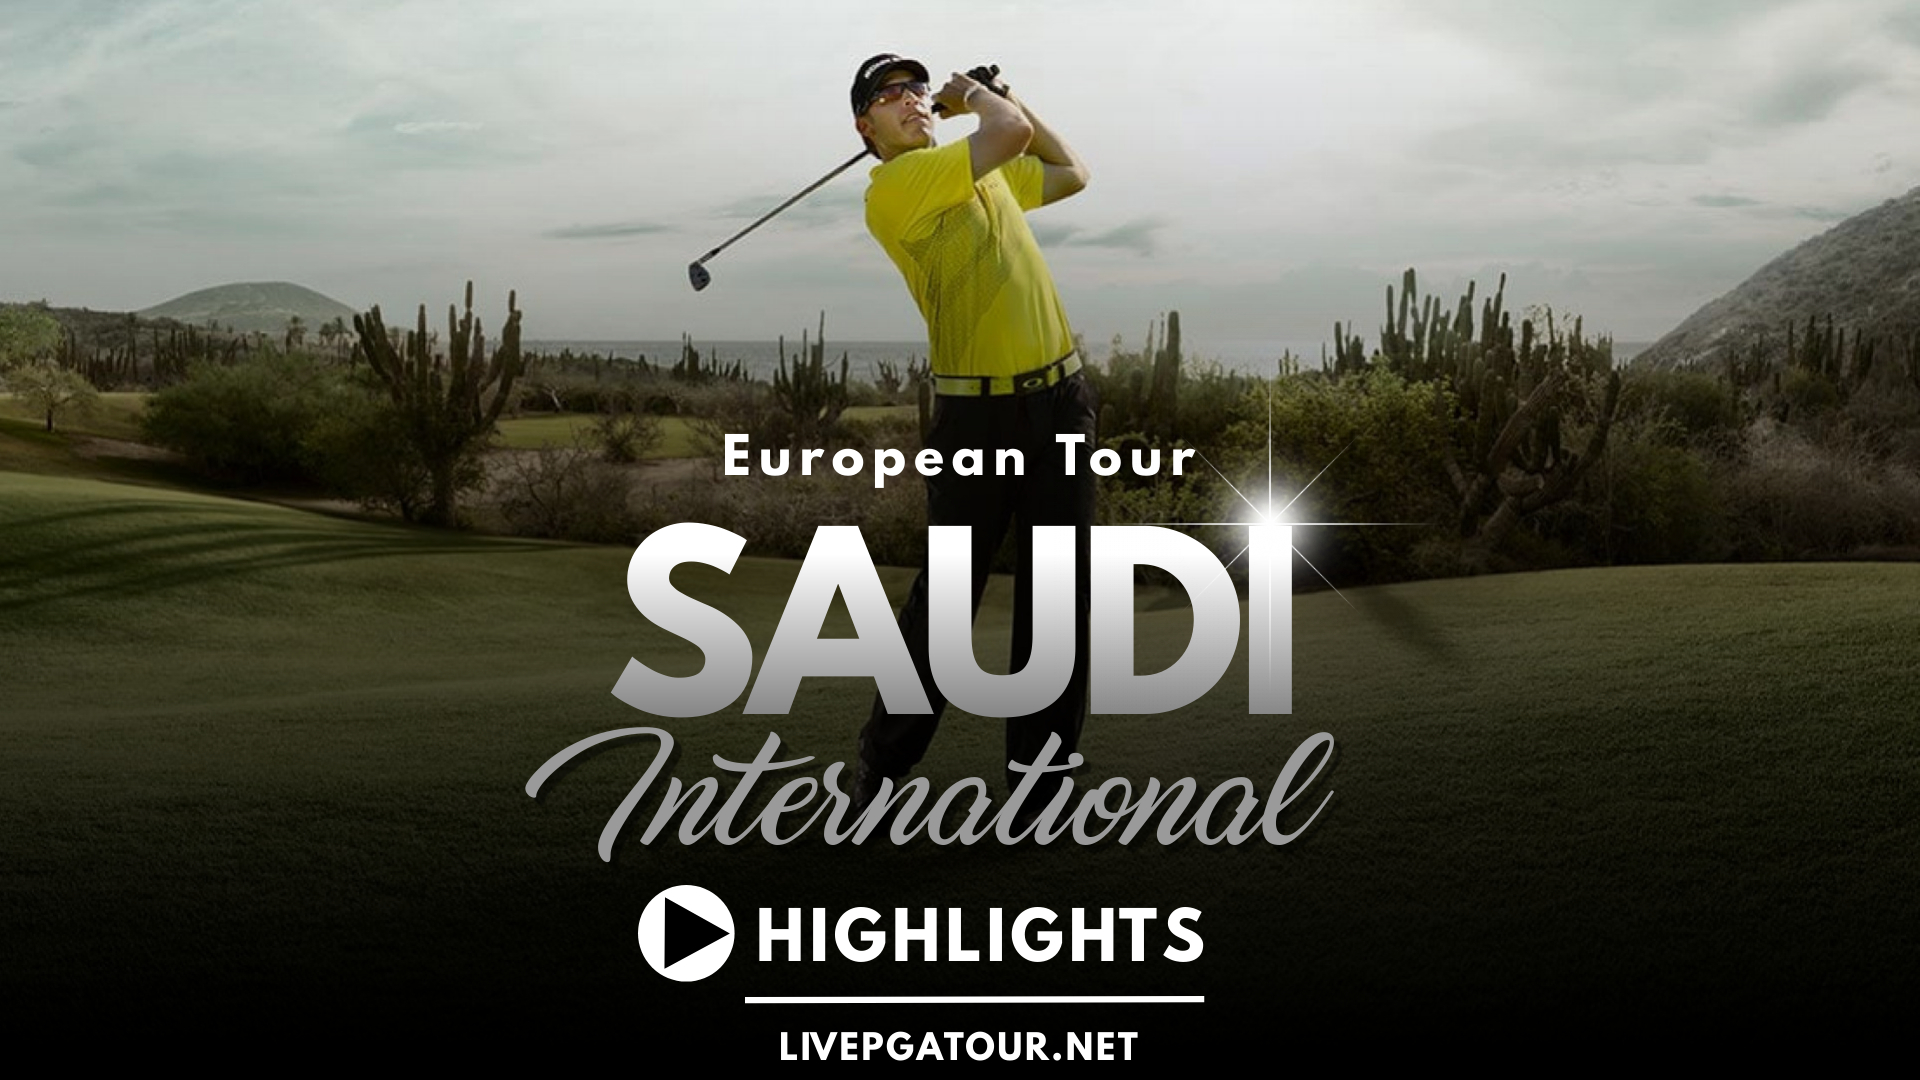 Saudi International Day 4 Highlights 2021 European Tour